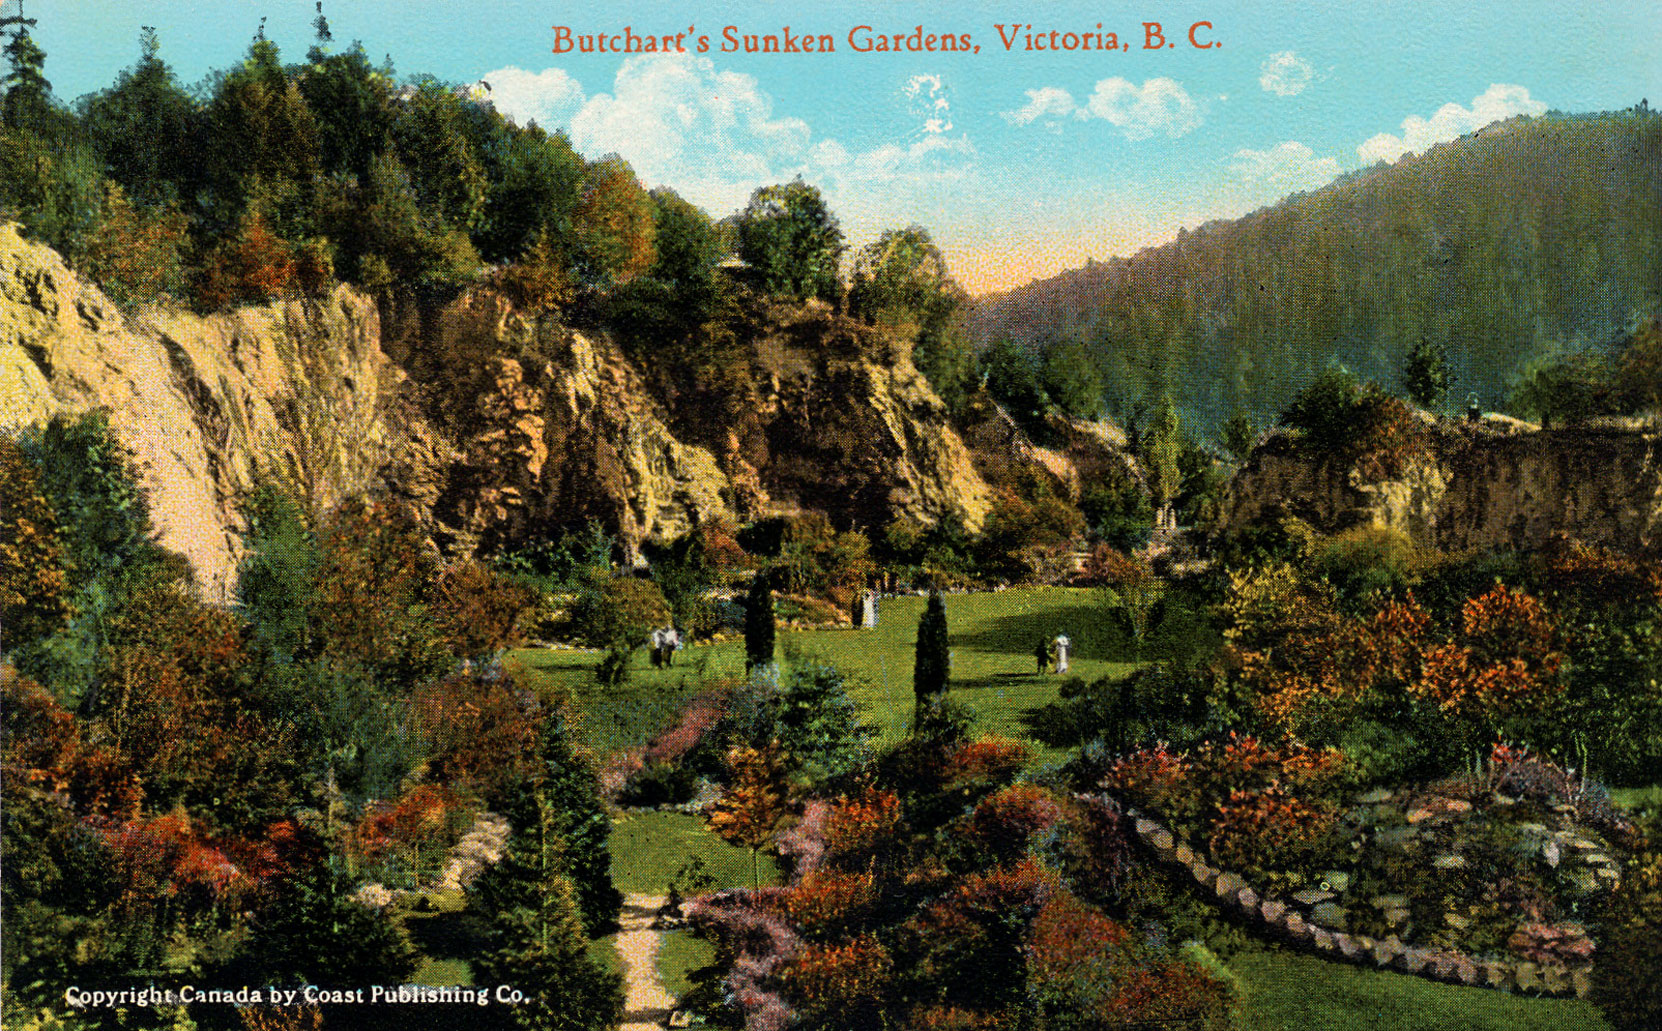 Postcard of the Sunken Garden, circa 1920 (Author's collection)